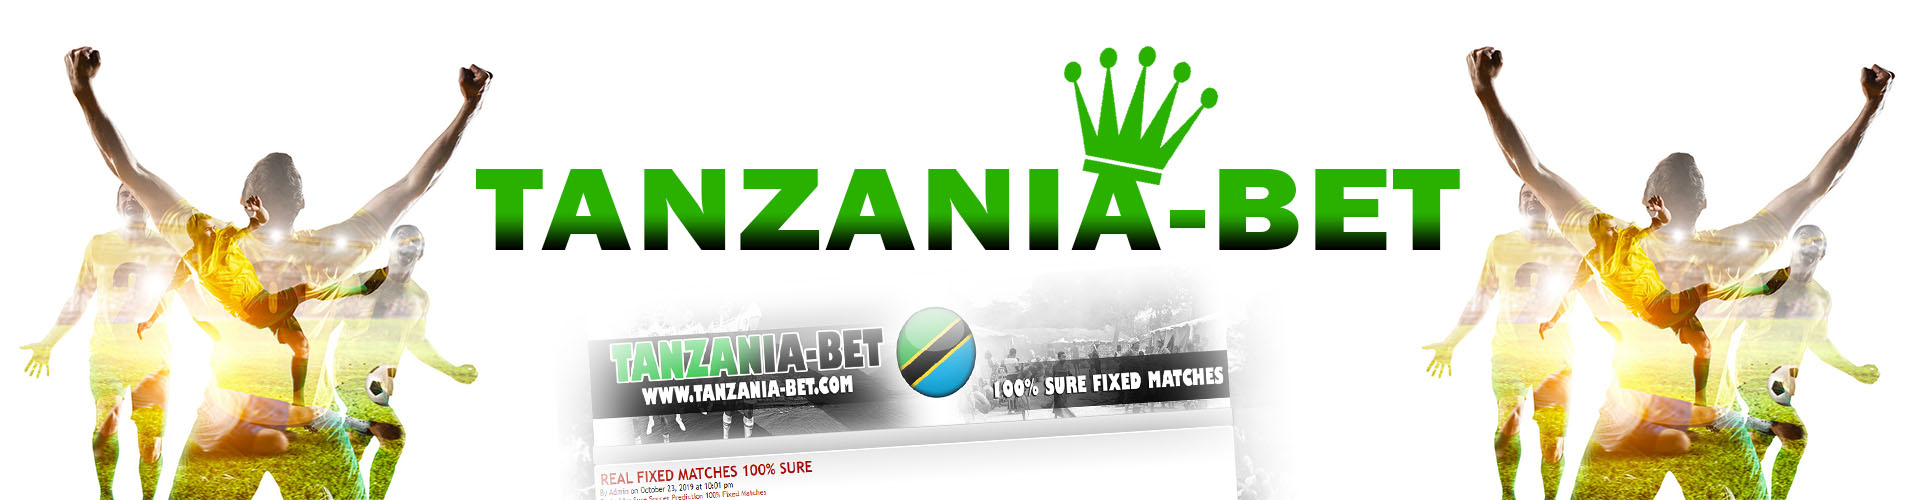 tanzania fixed matches 100% sure